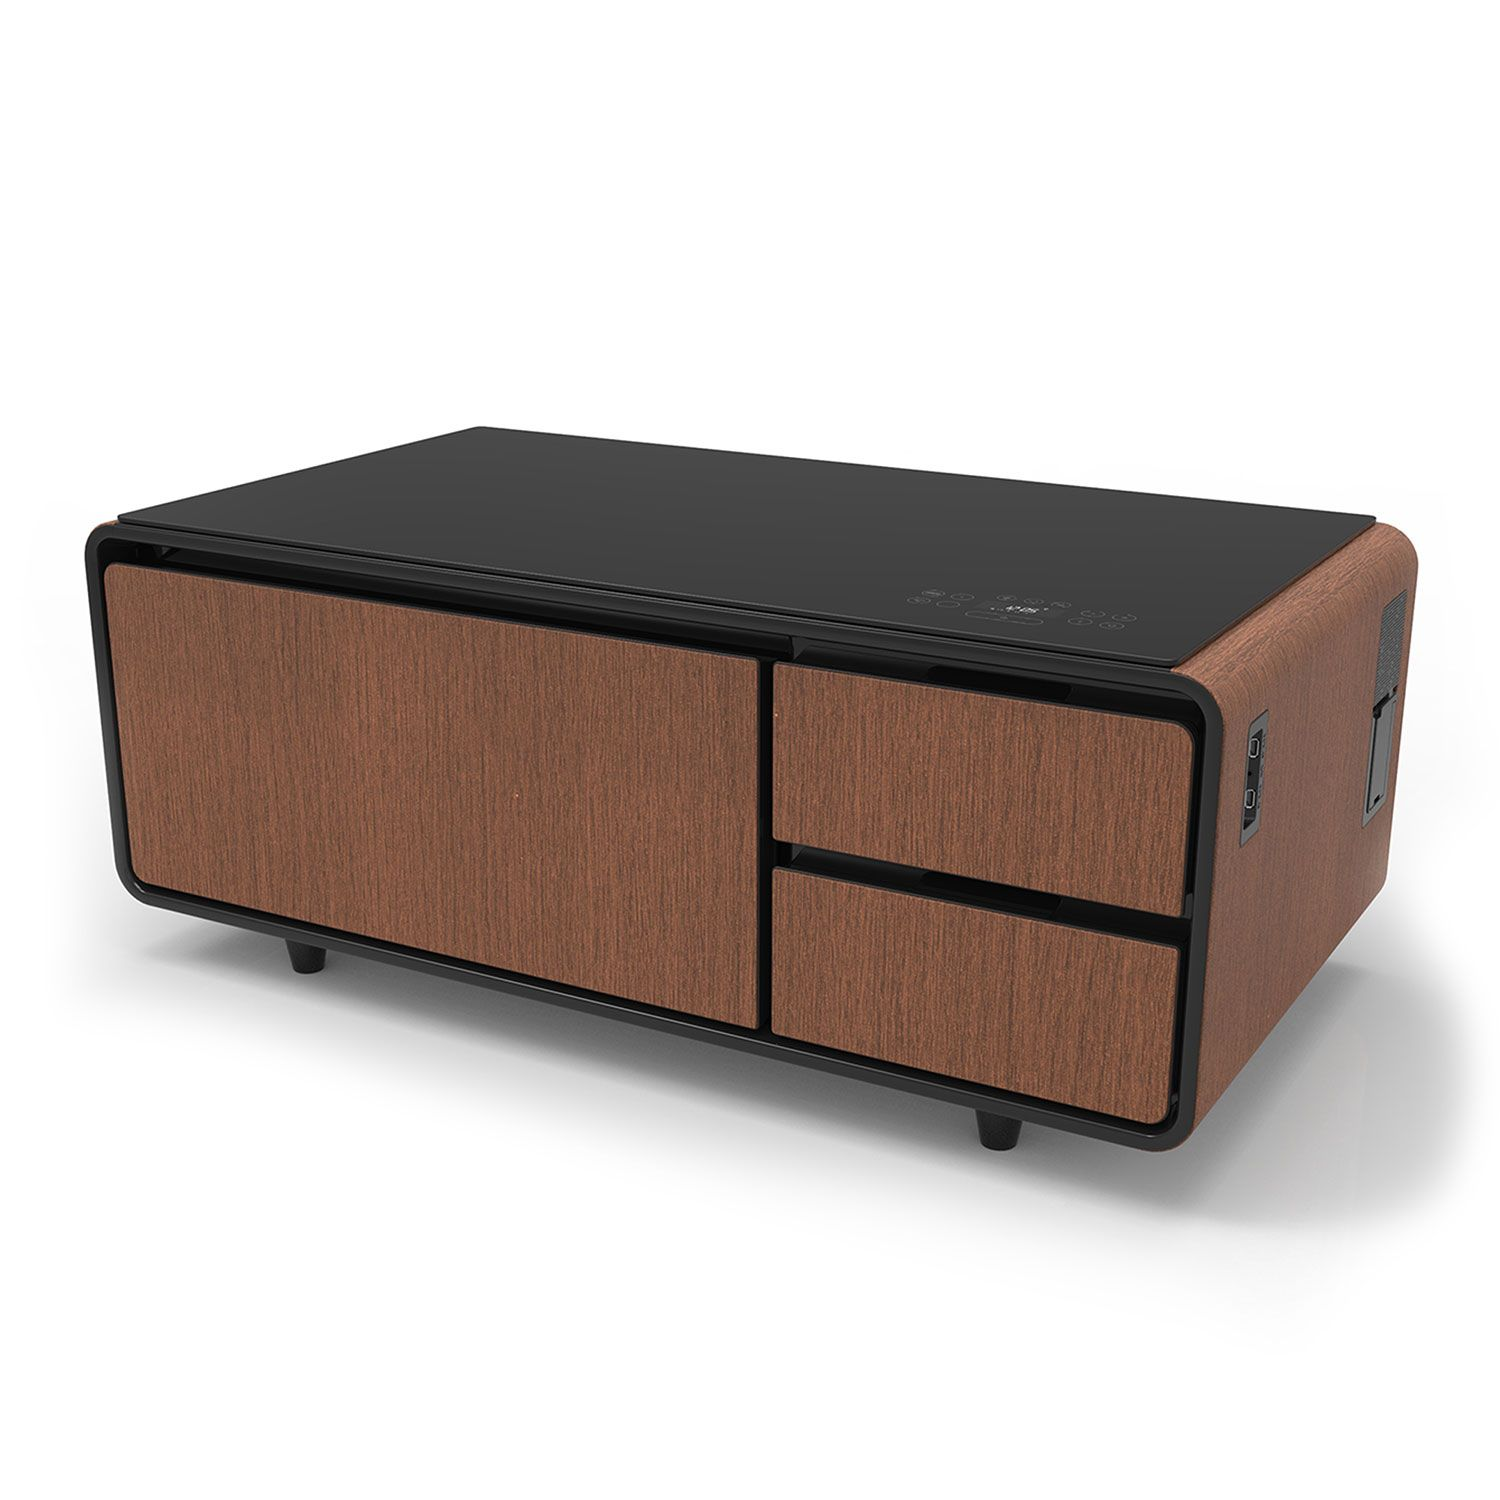 The Sobro Smart Coffee Table is a center for connection